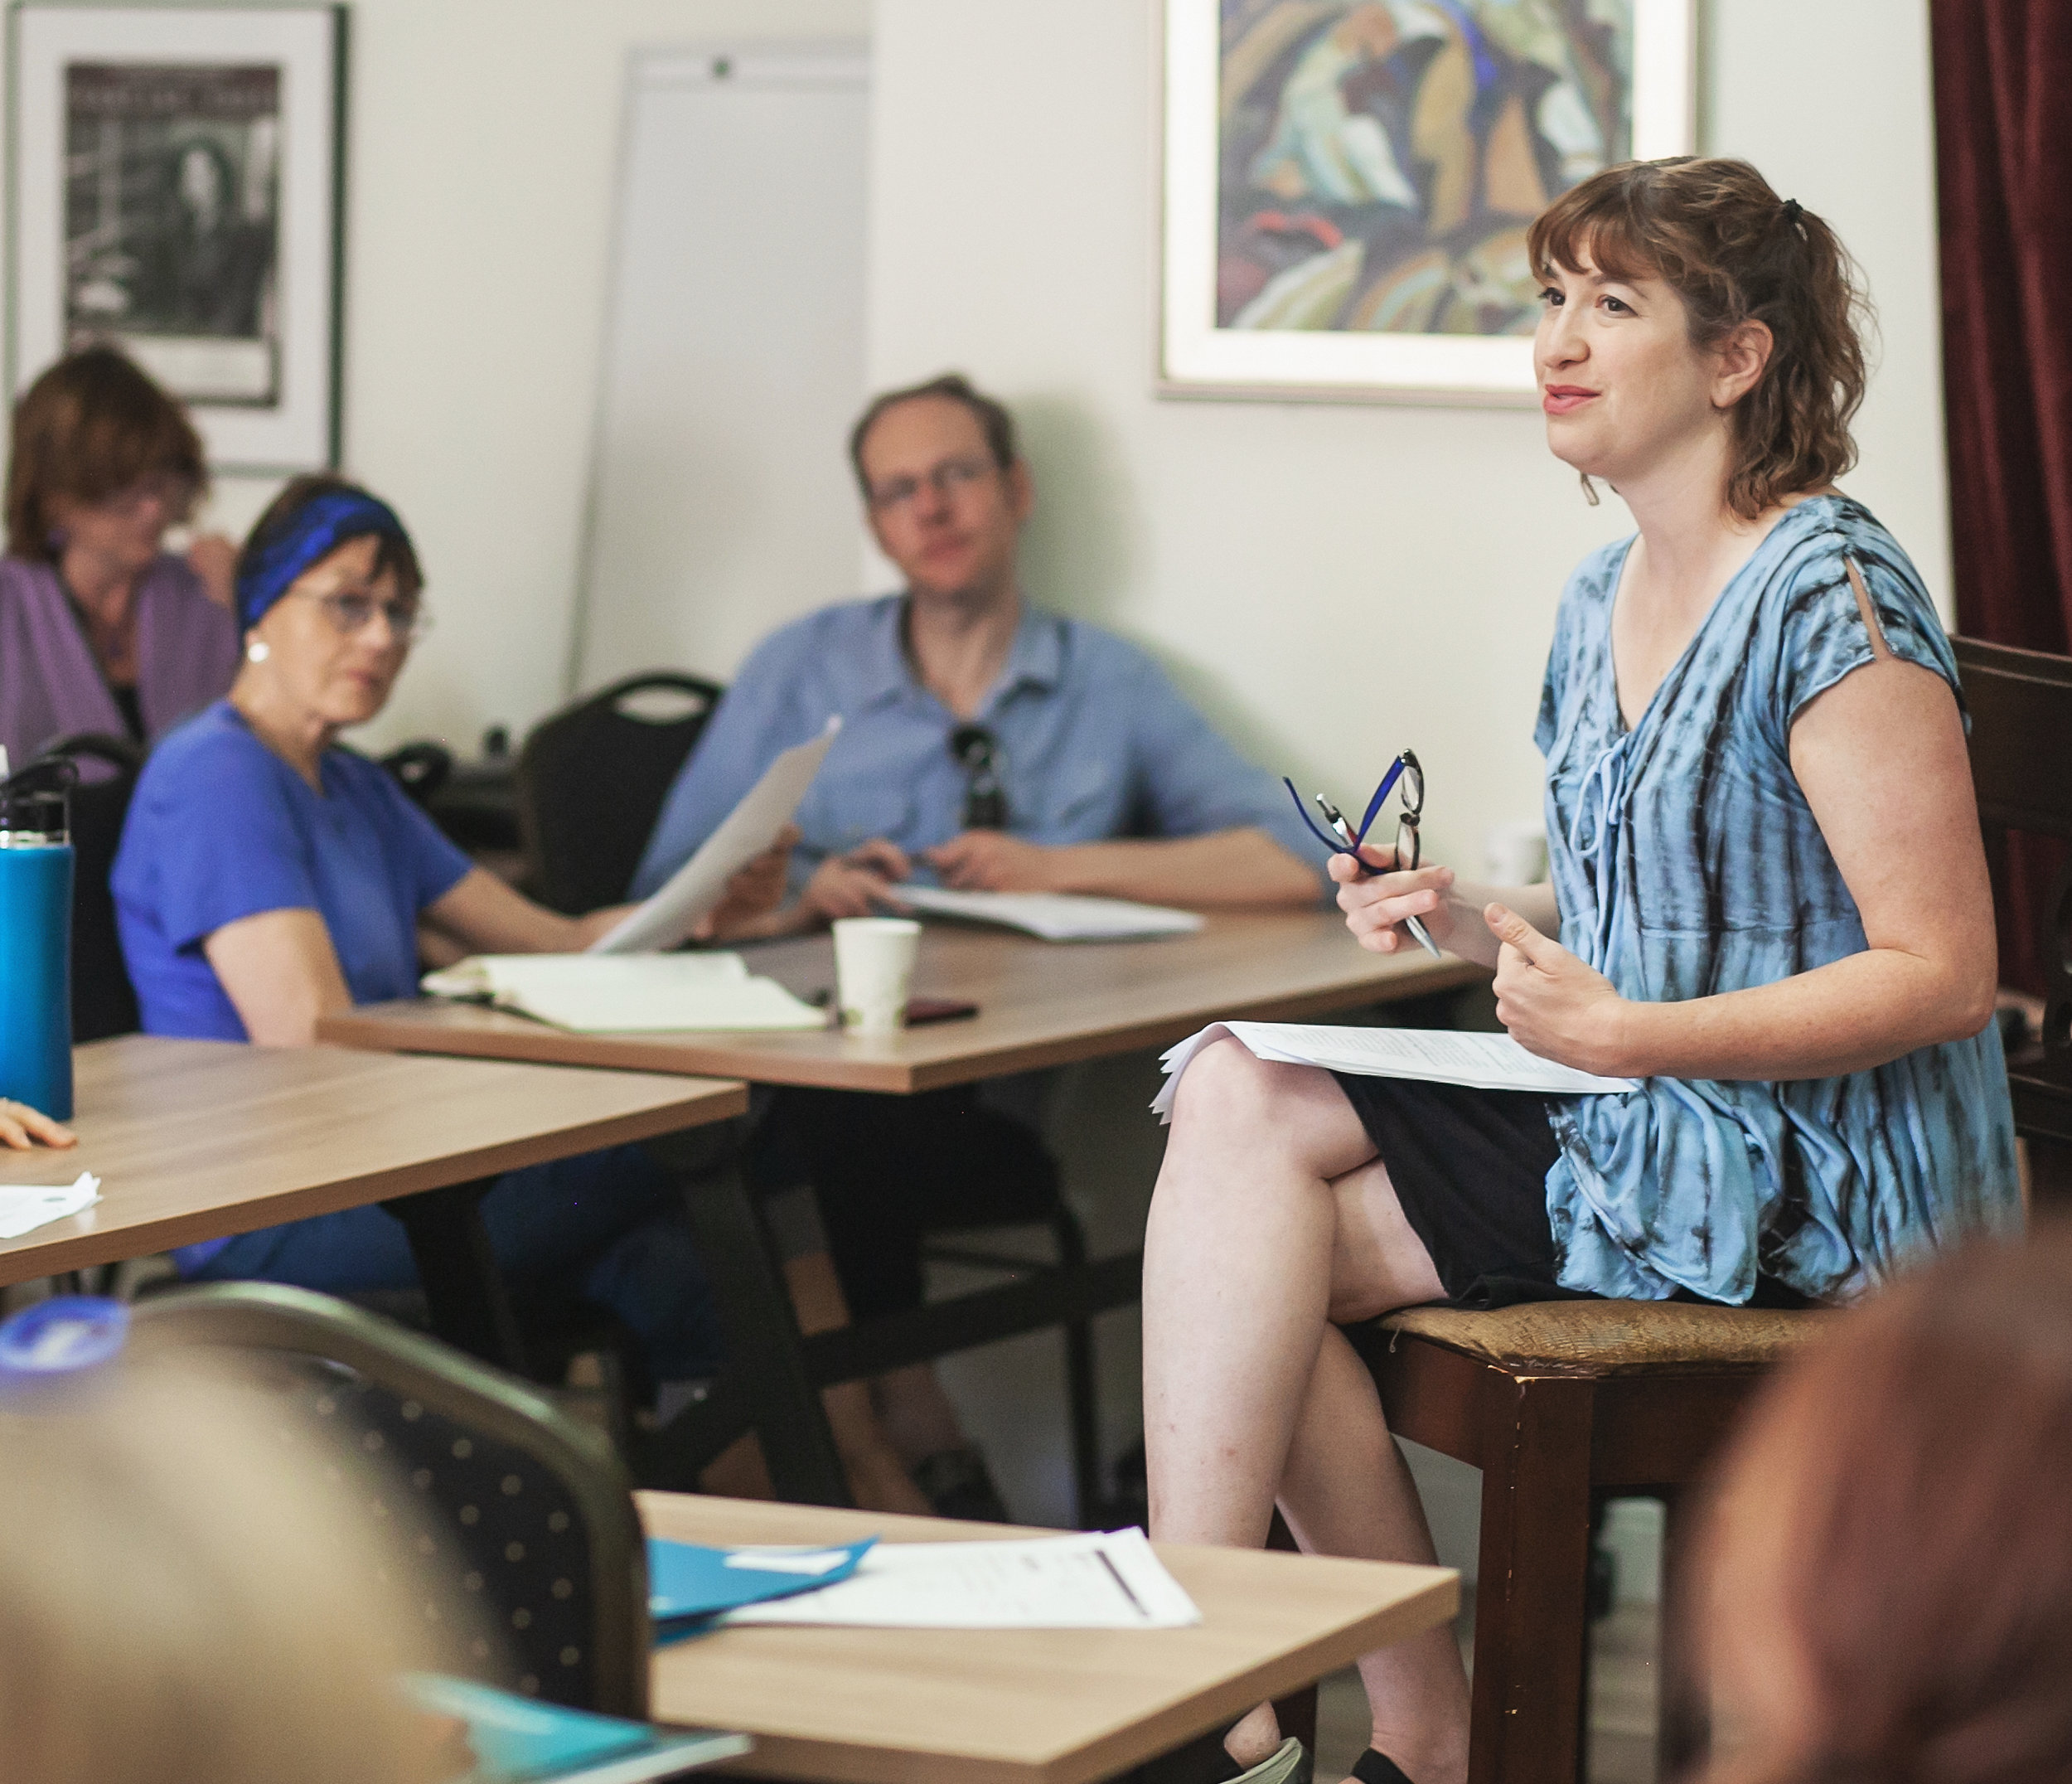 Lit Fest craft class at Lighthouse Writers Workshop in Denver. Photo: Amanda Tipton Photography